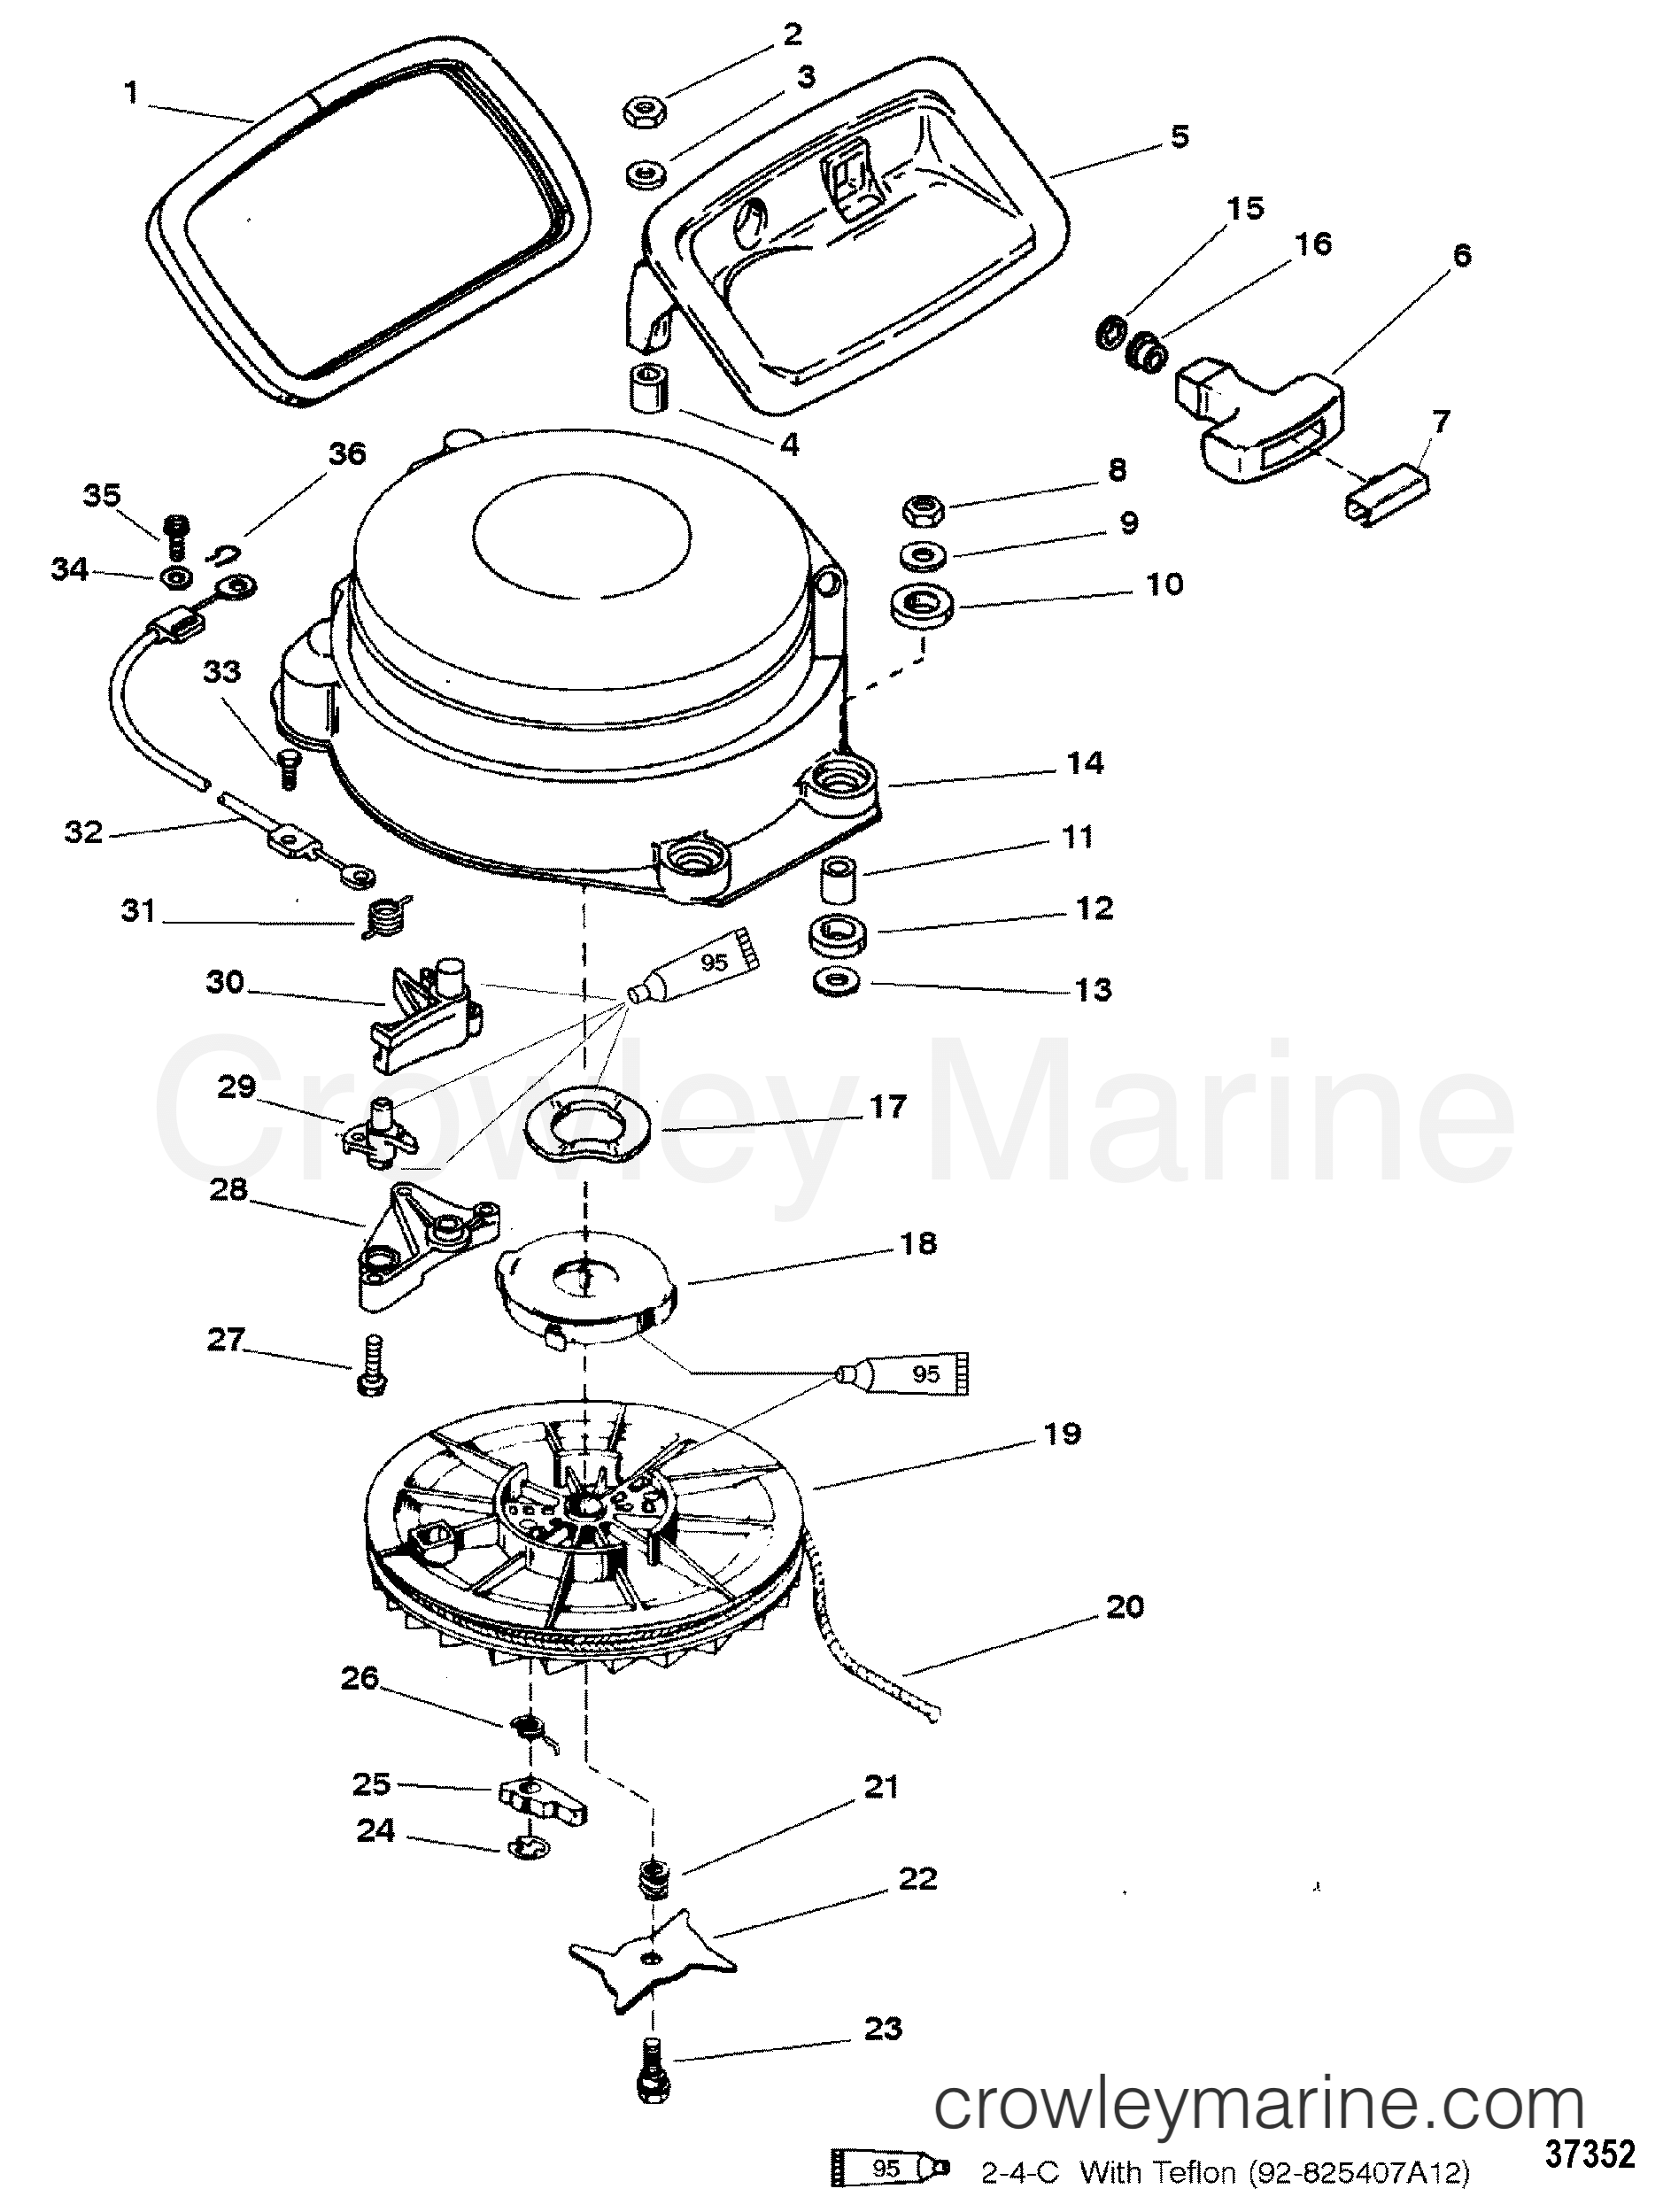 Manual Start Components